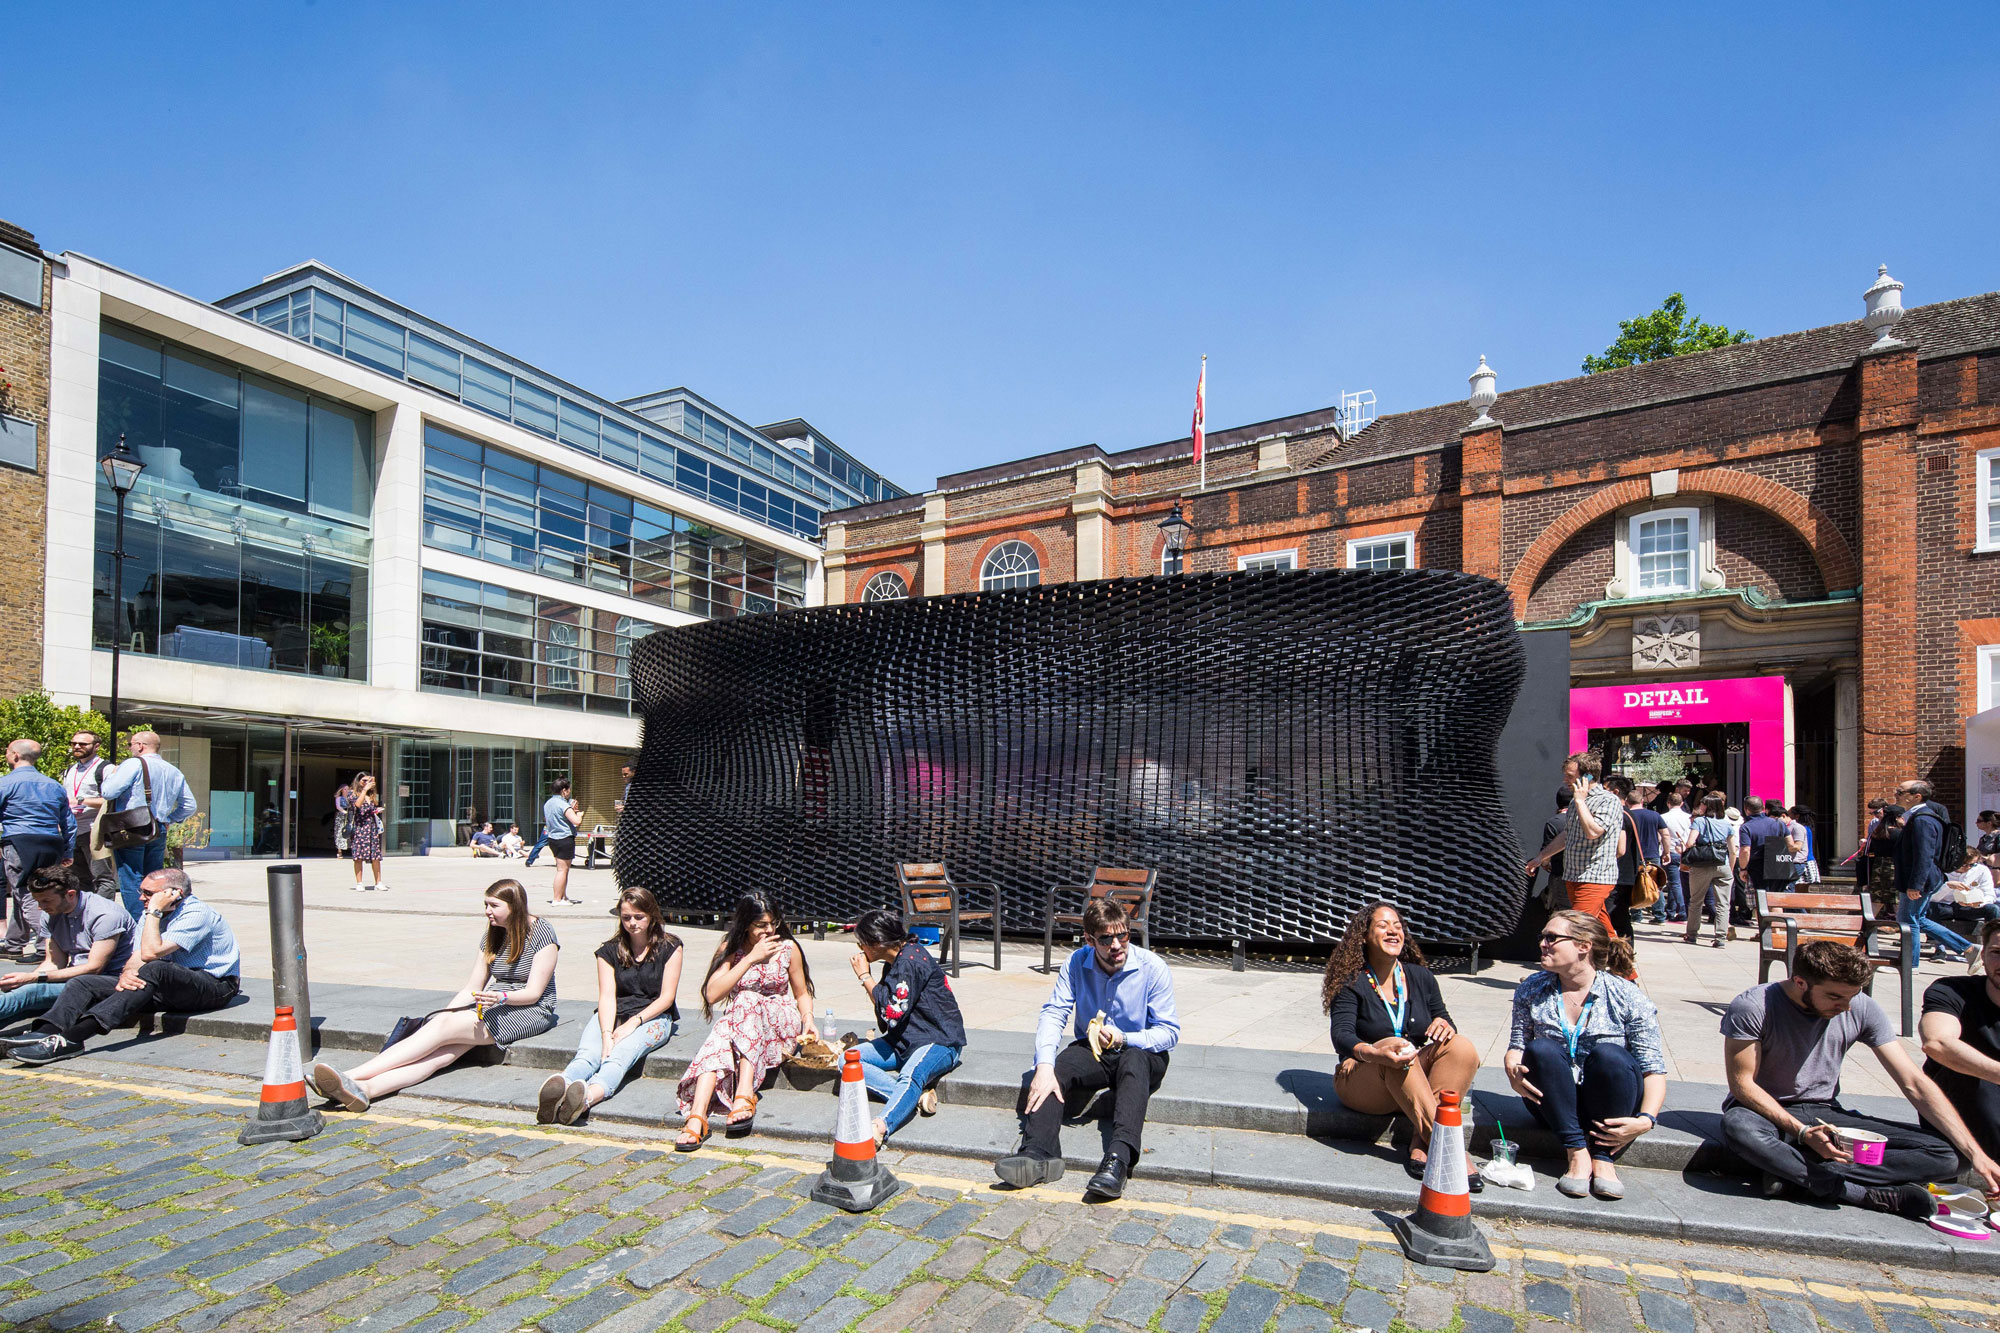 Clerkenwell Design Week- The Best Tips to Fully Enjoy It!_1 clerkenwell design week Clerkenwell Design Week: The Best Tips to Fully Enjoy It! Clerkenwell Design Week The Best Tips to Fully Enjoy It 2